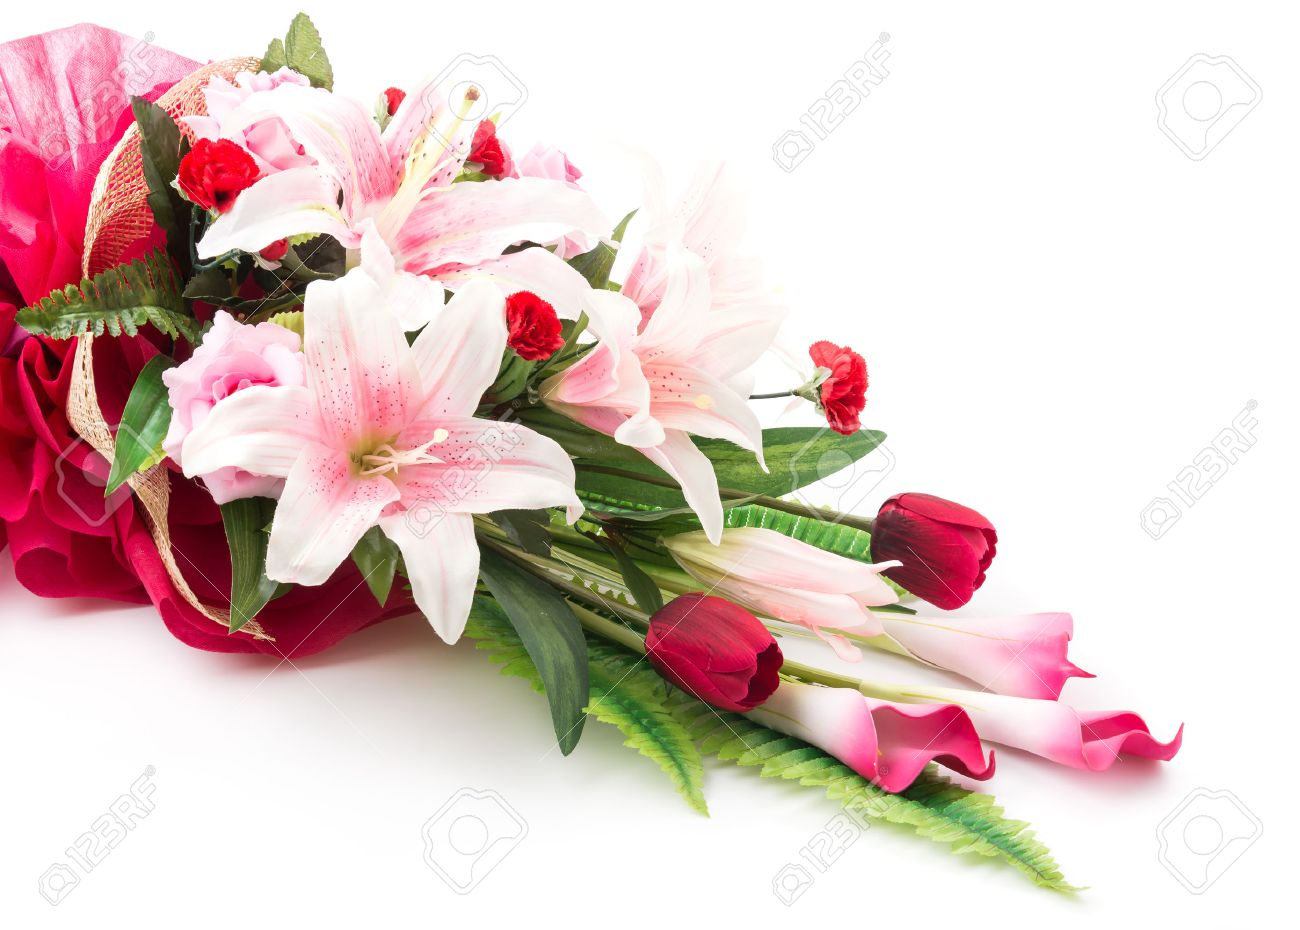 Bouquet flowers isolated on white background stock photo picture bouquet flowers isolated on white background stock photo 40464418 dhlflorist Image collections